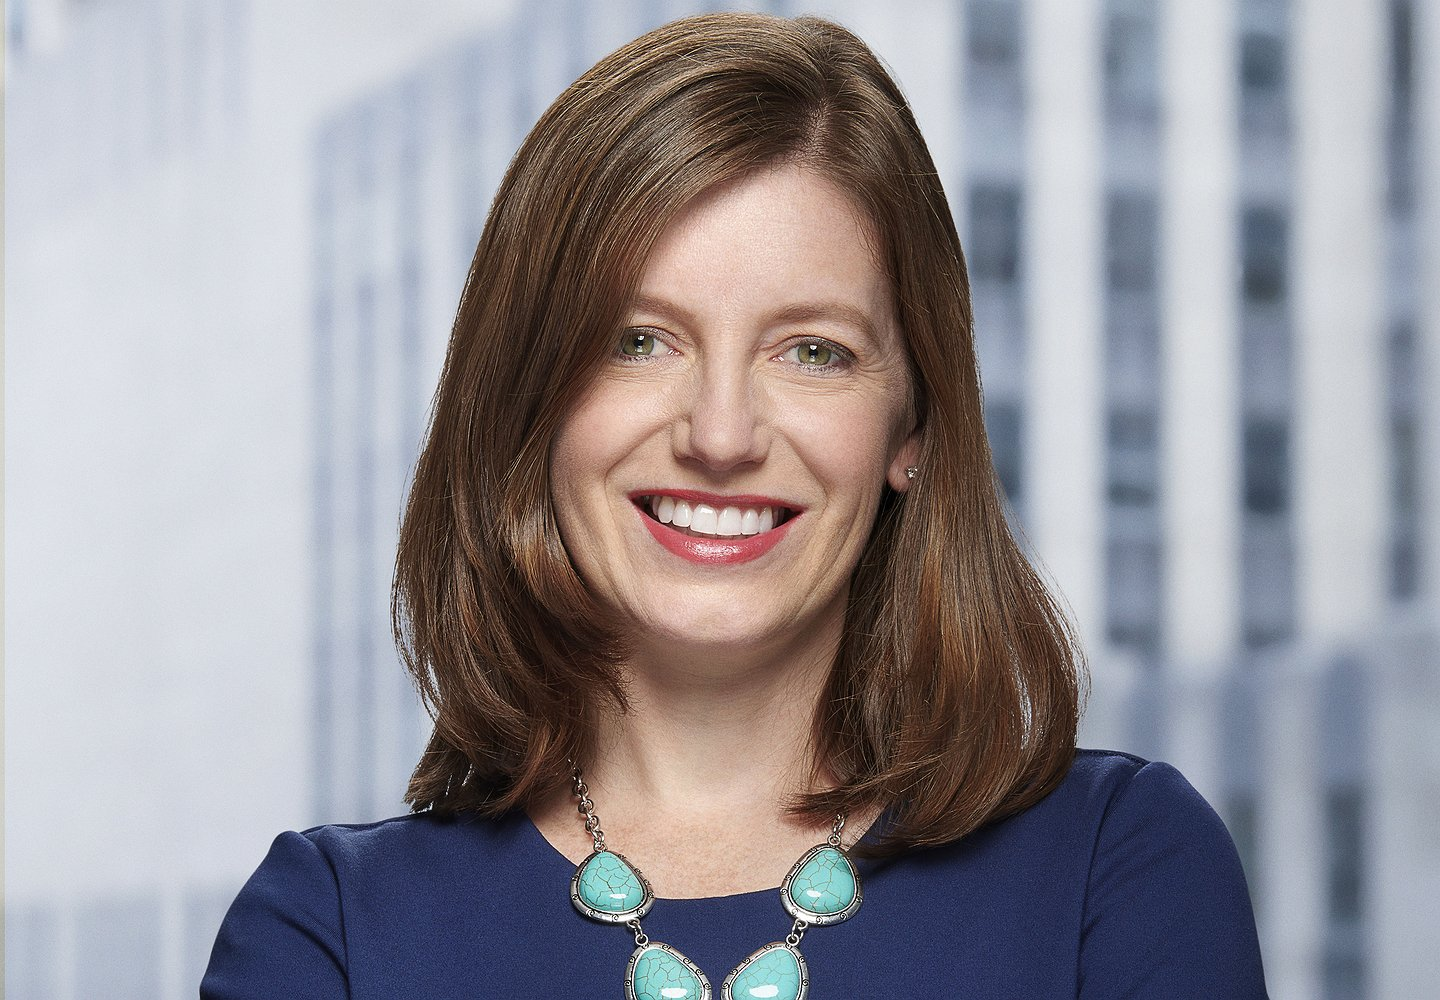 AT&T's Christina Beaumier on Speaking the Language of TV and Digital